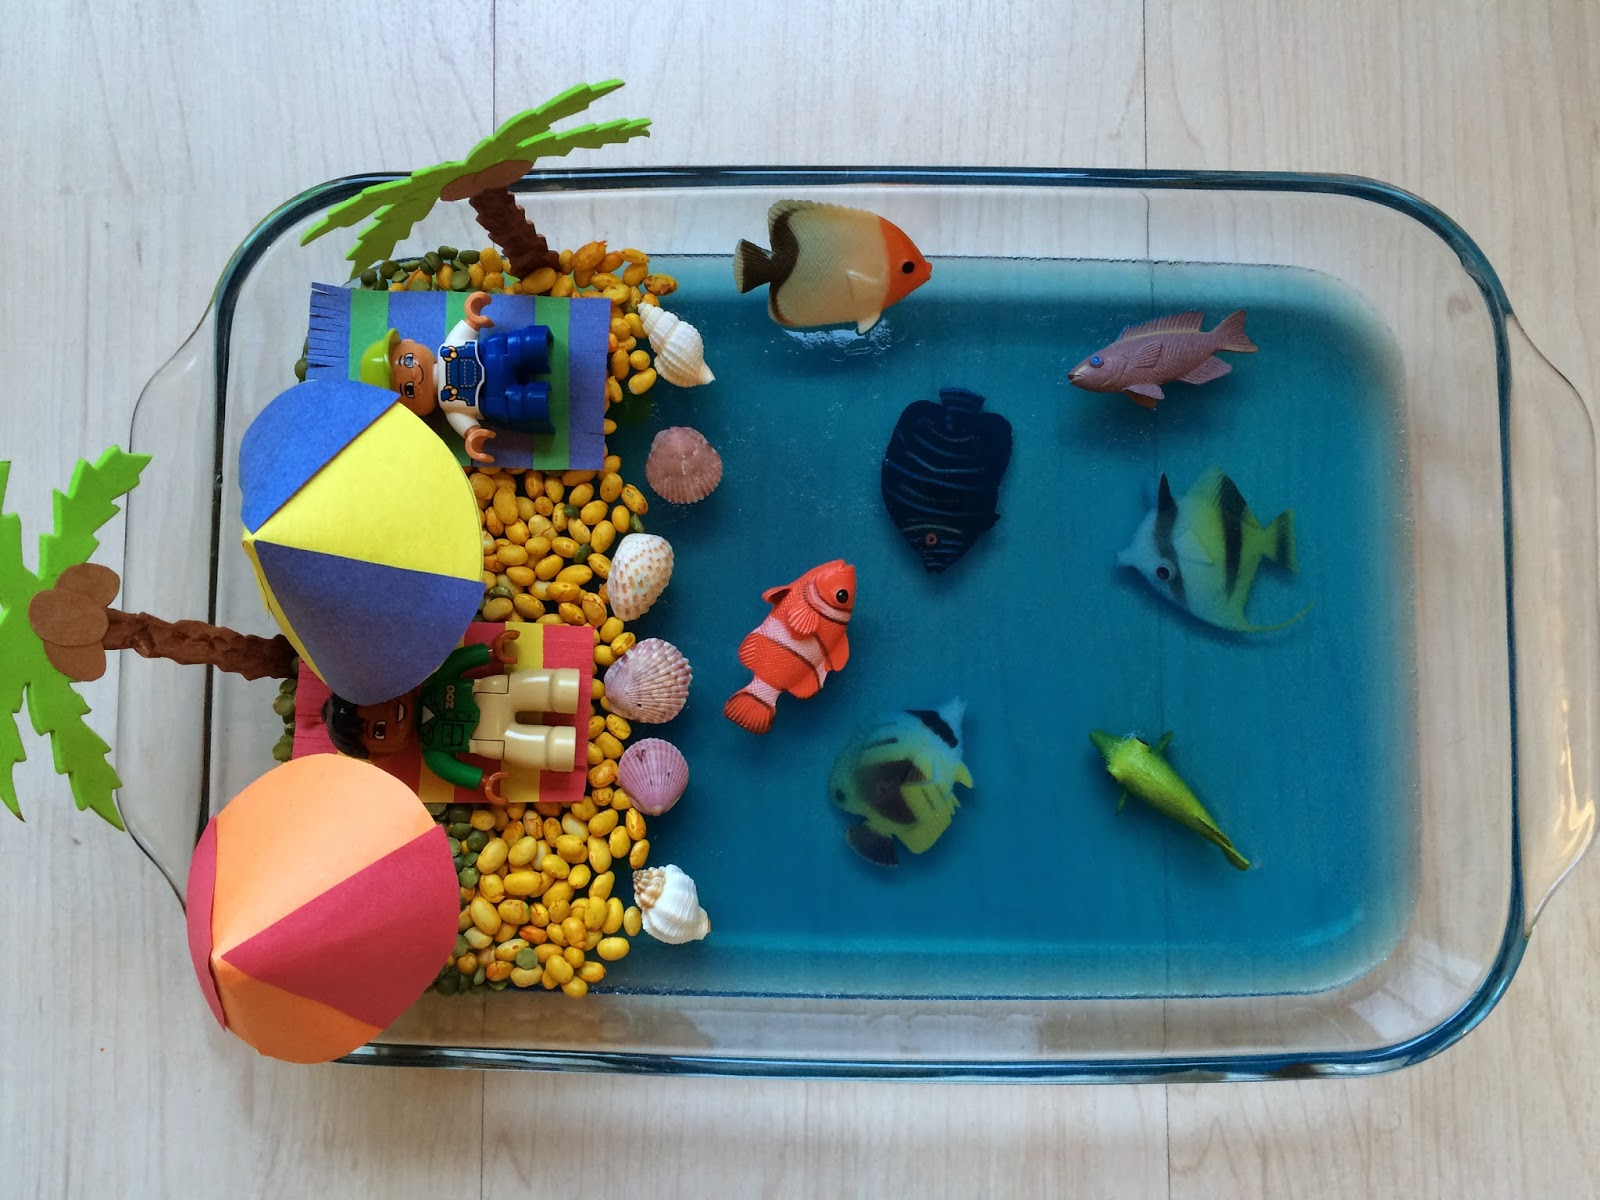 Beach Craft Ideas For Kids Part - 25: The Nest Morning I Made A Beach Out Of Yellow Colored Beans And Split Peas  And Added More Fish And Seashells. I Made Beach Towels And Umbrellas Out Of  ...